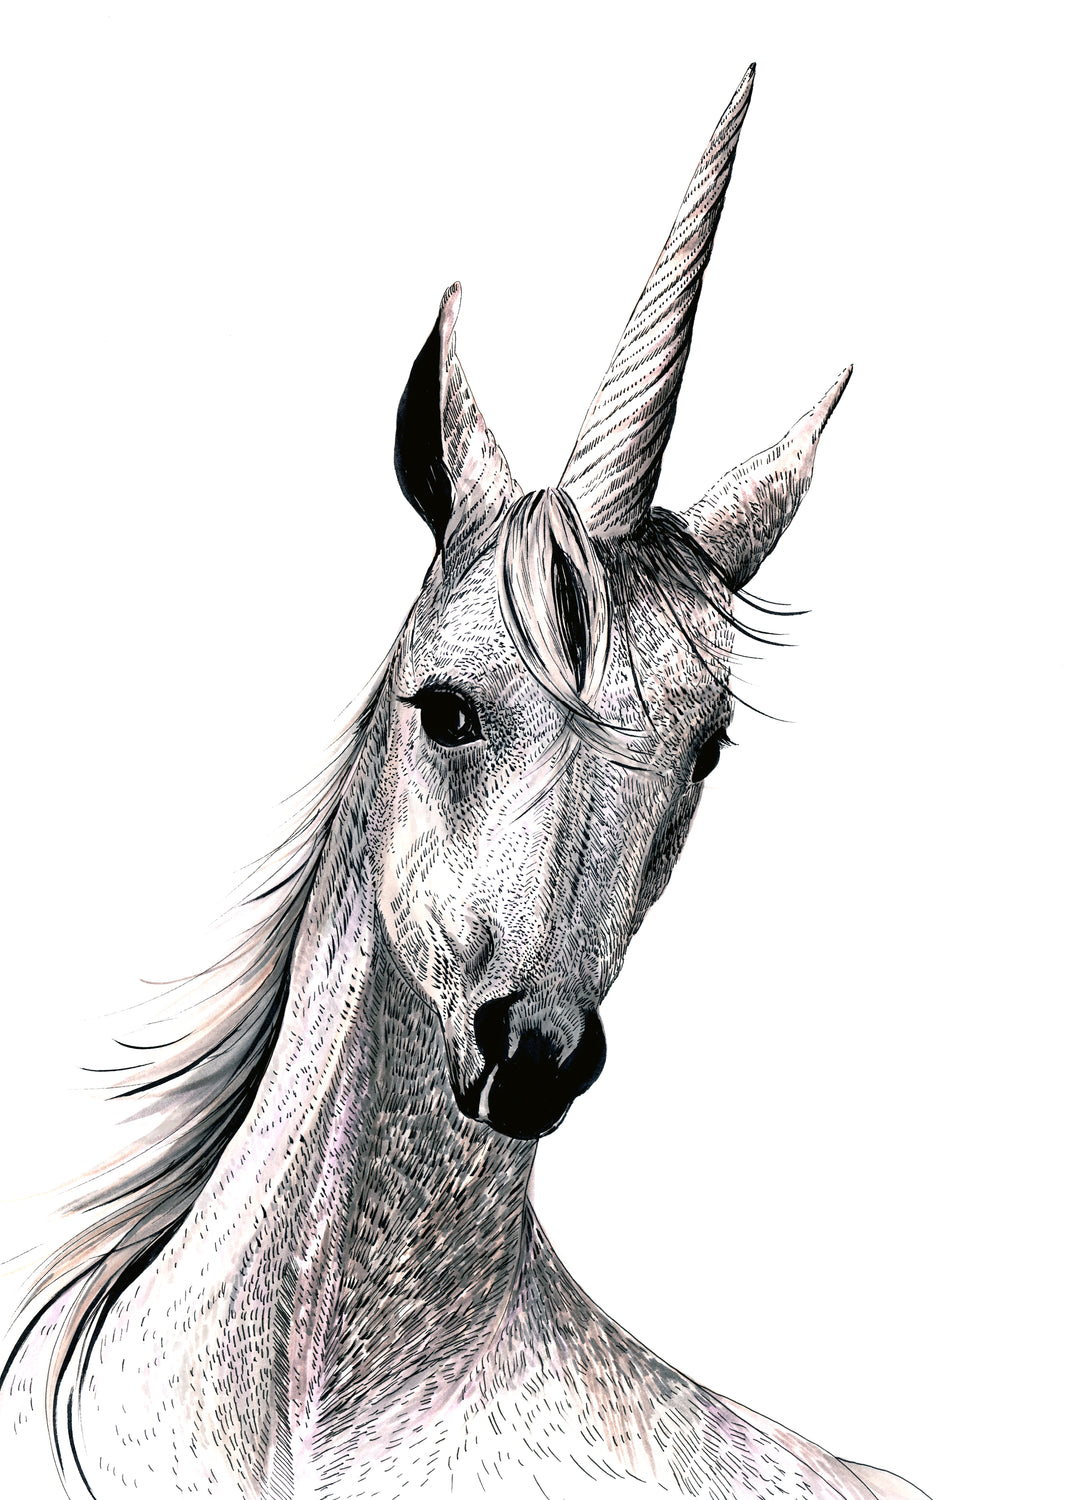 Pandora the Unicorn Giclée Print